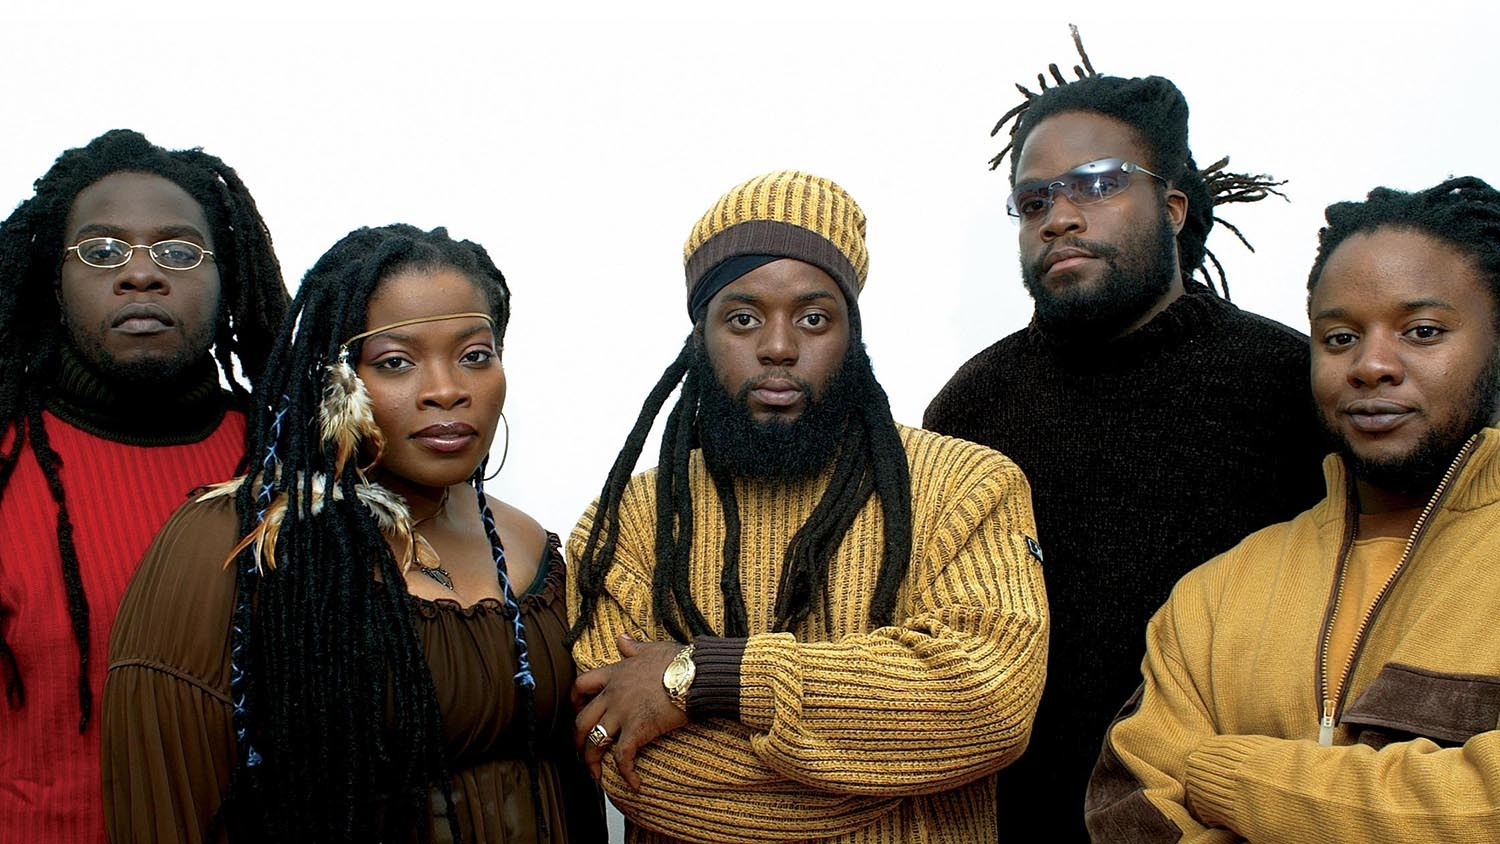 The Reggae band  Morgan Heritage  made up of 5 siblings will be in Kenya for a concert on 3rd October